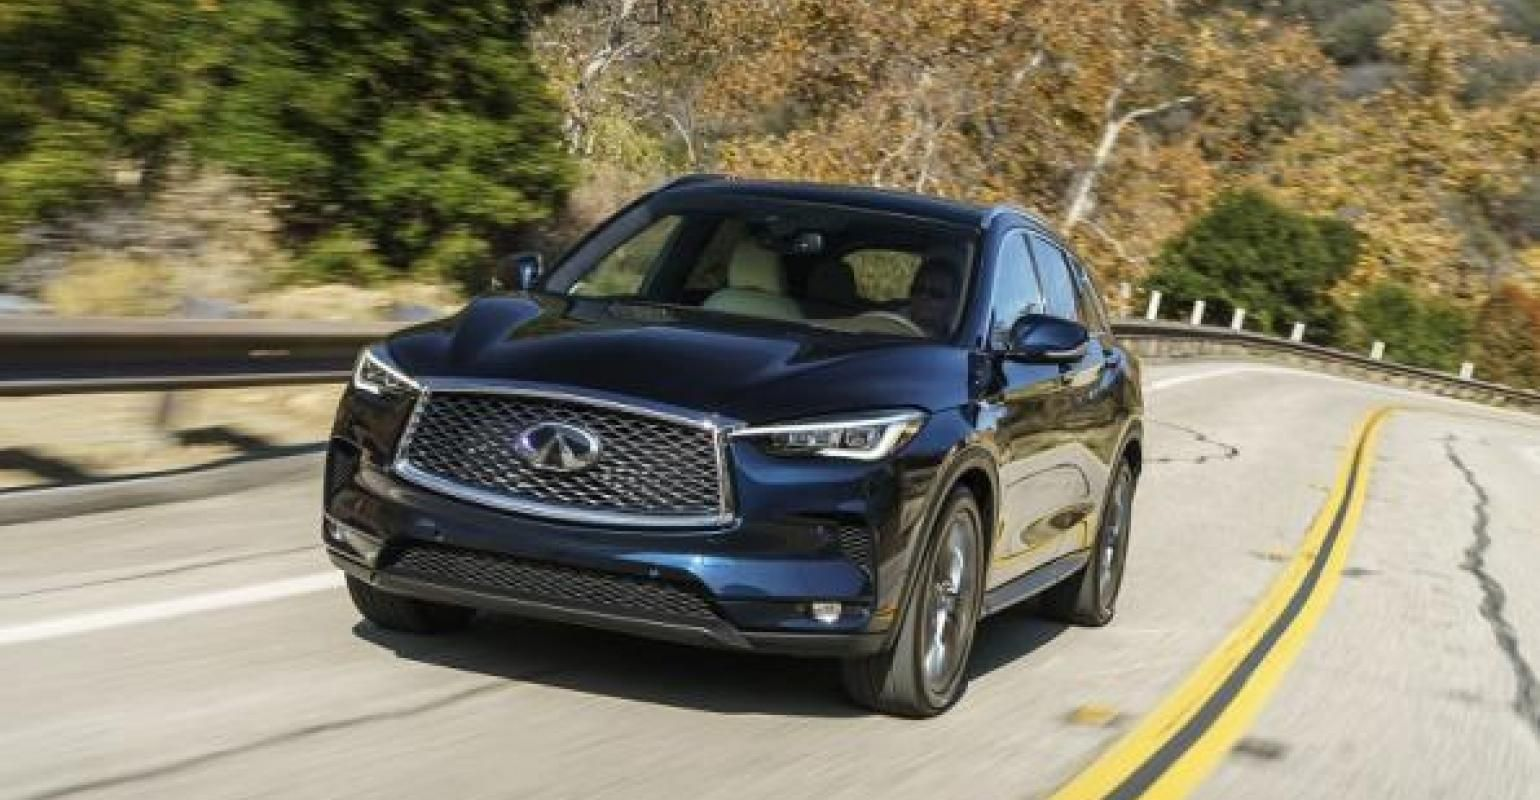 51 New 2021 Infiniti Qx50 Performance Specs and Review in